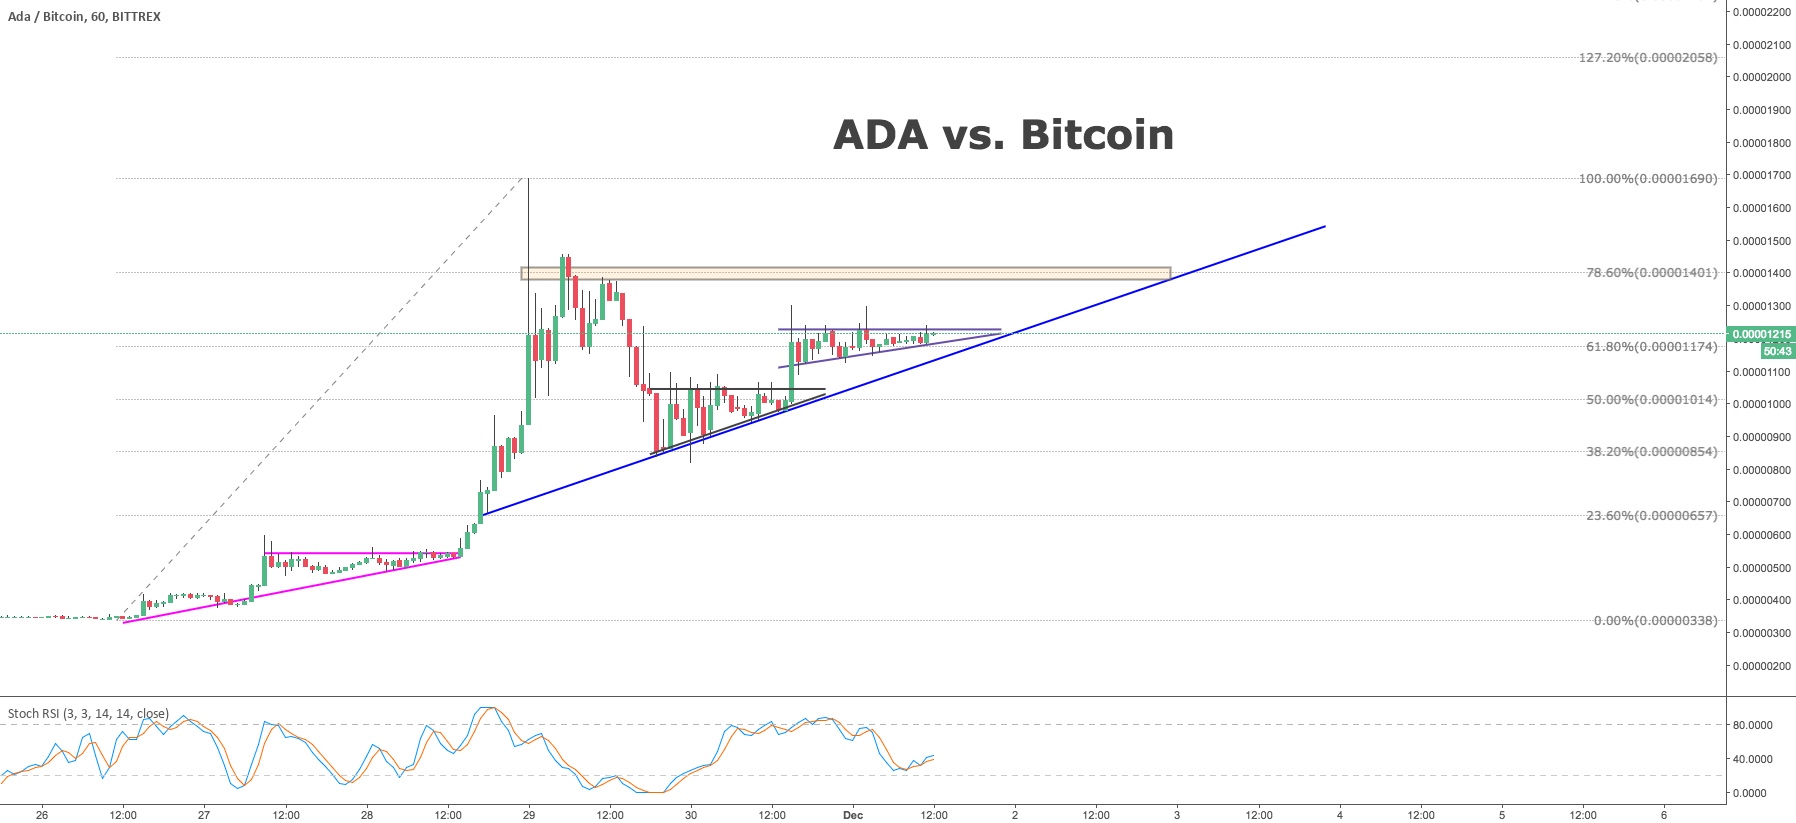 ADA vs. Bitcoin